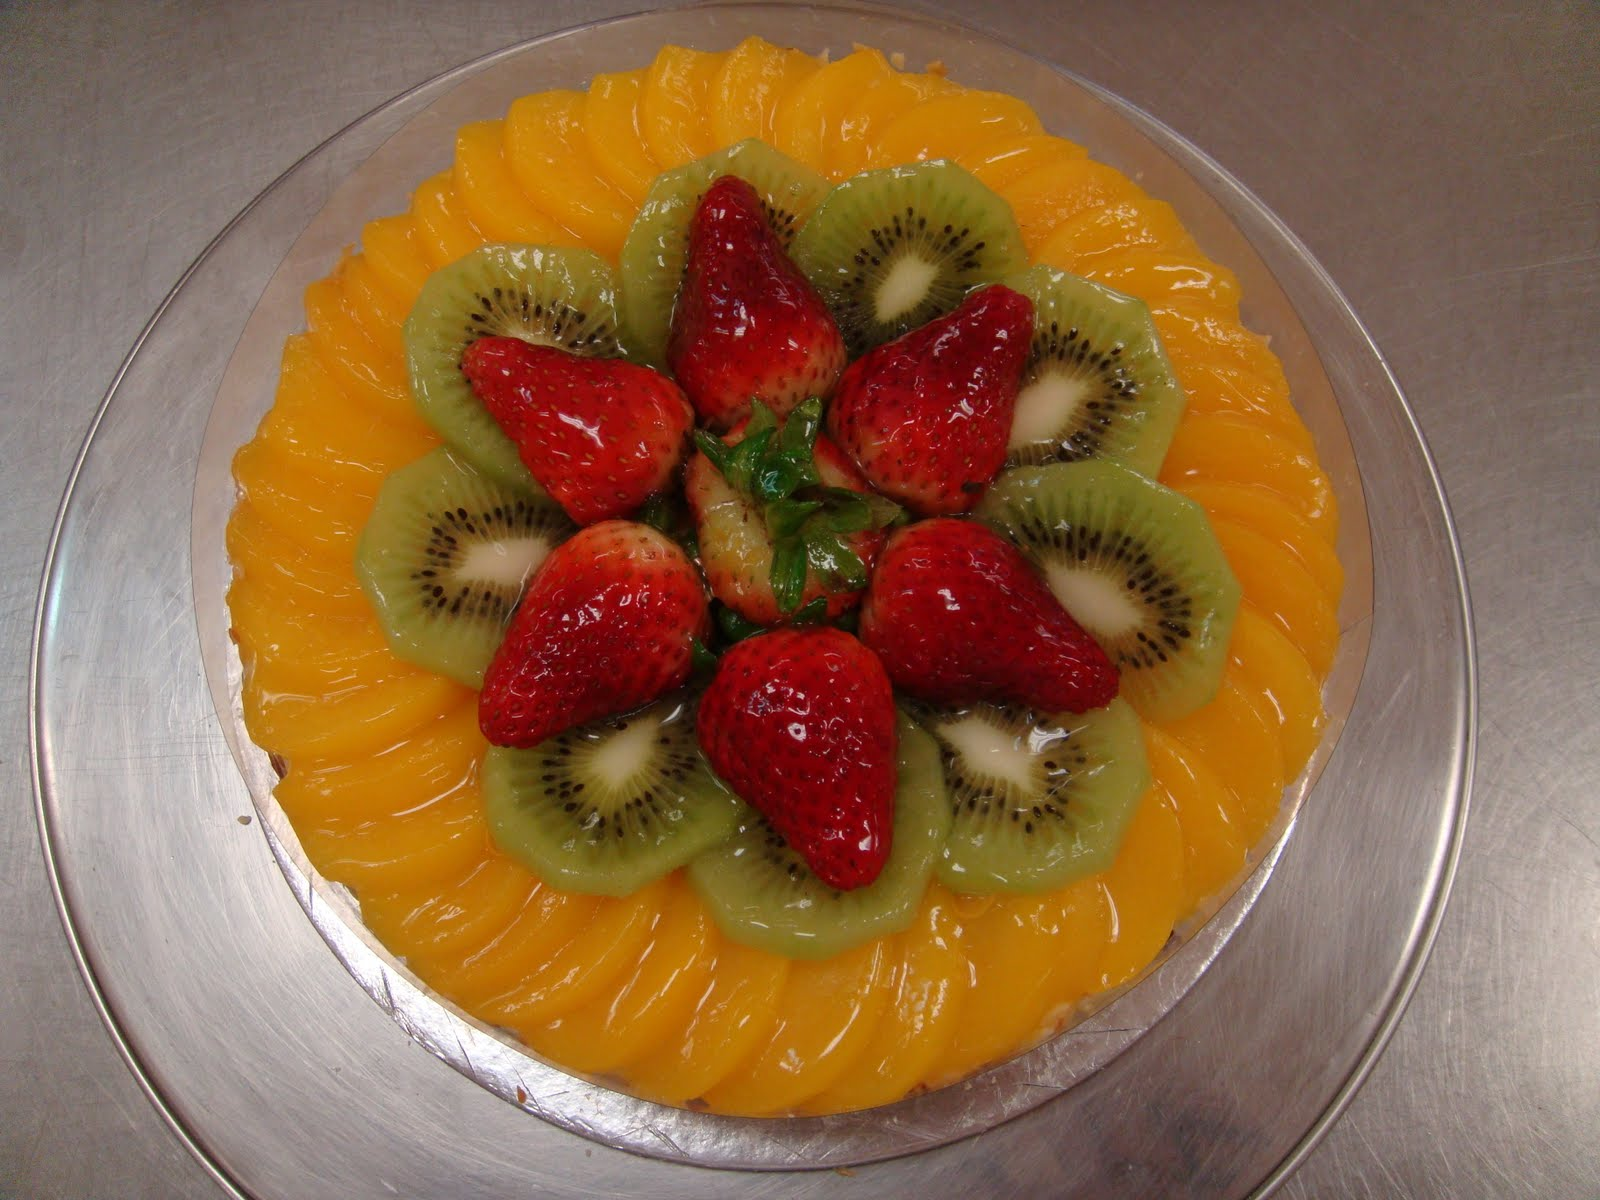 Yummy Baking Fruit Flan Cake